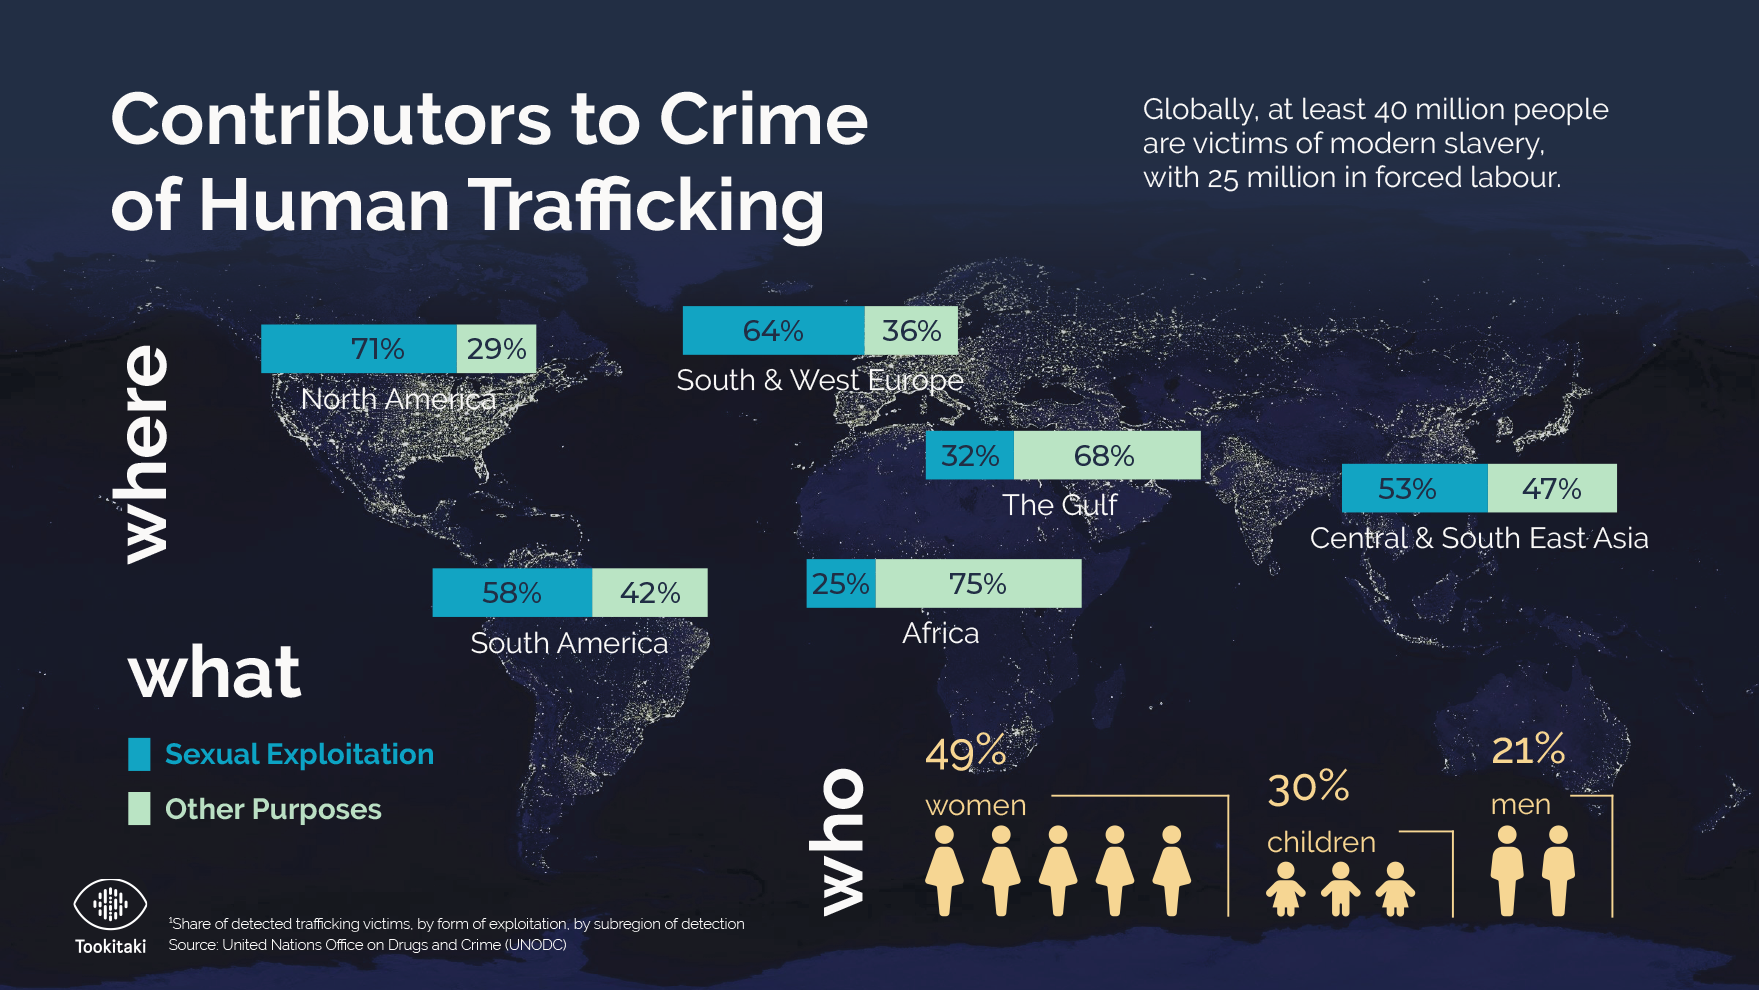 Contributors to Crime of Human Trafficking